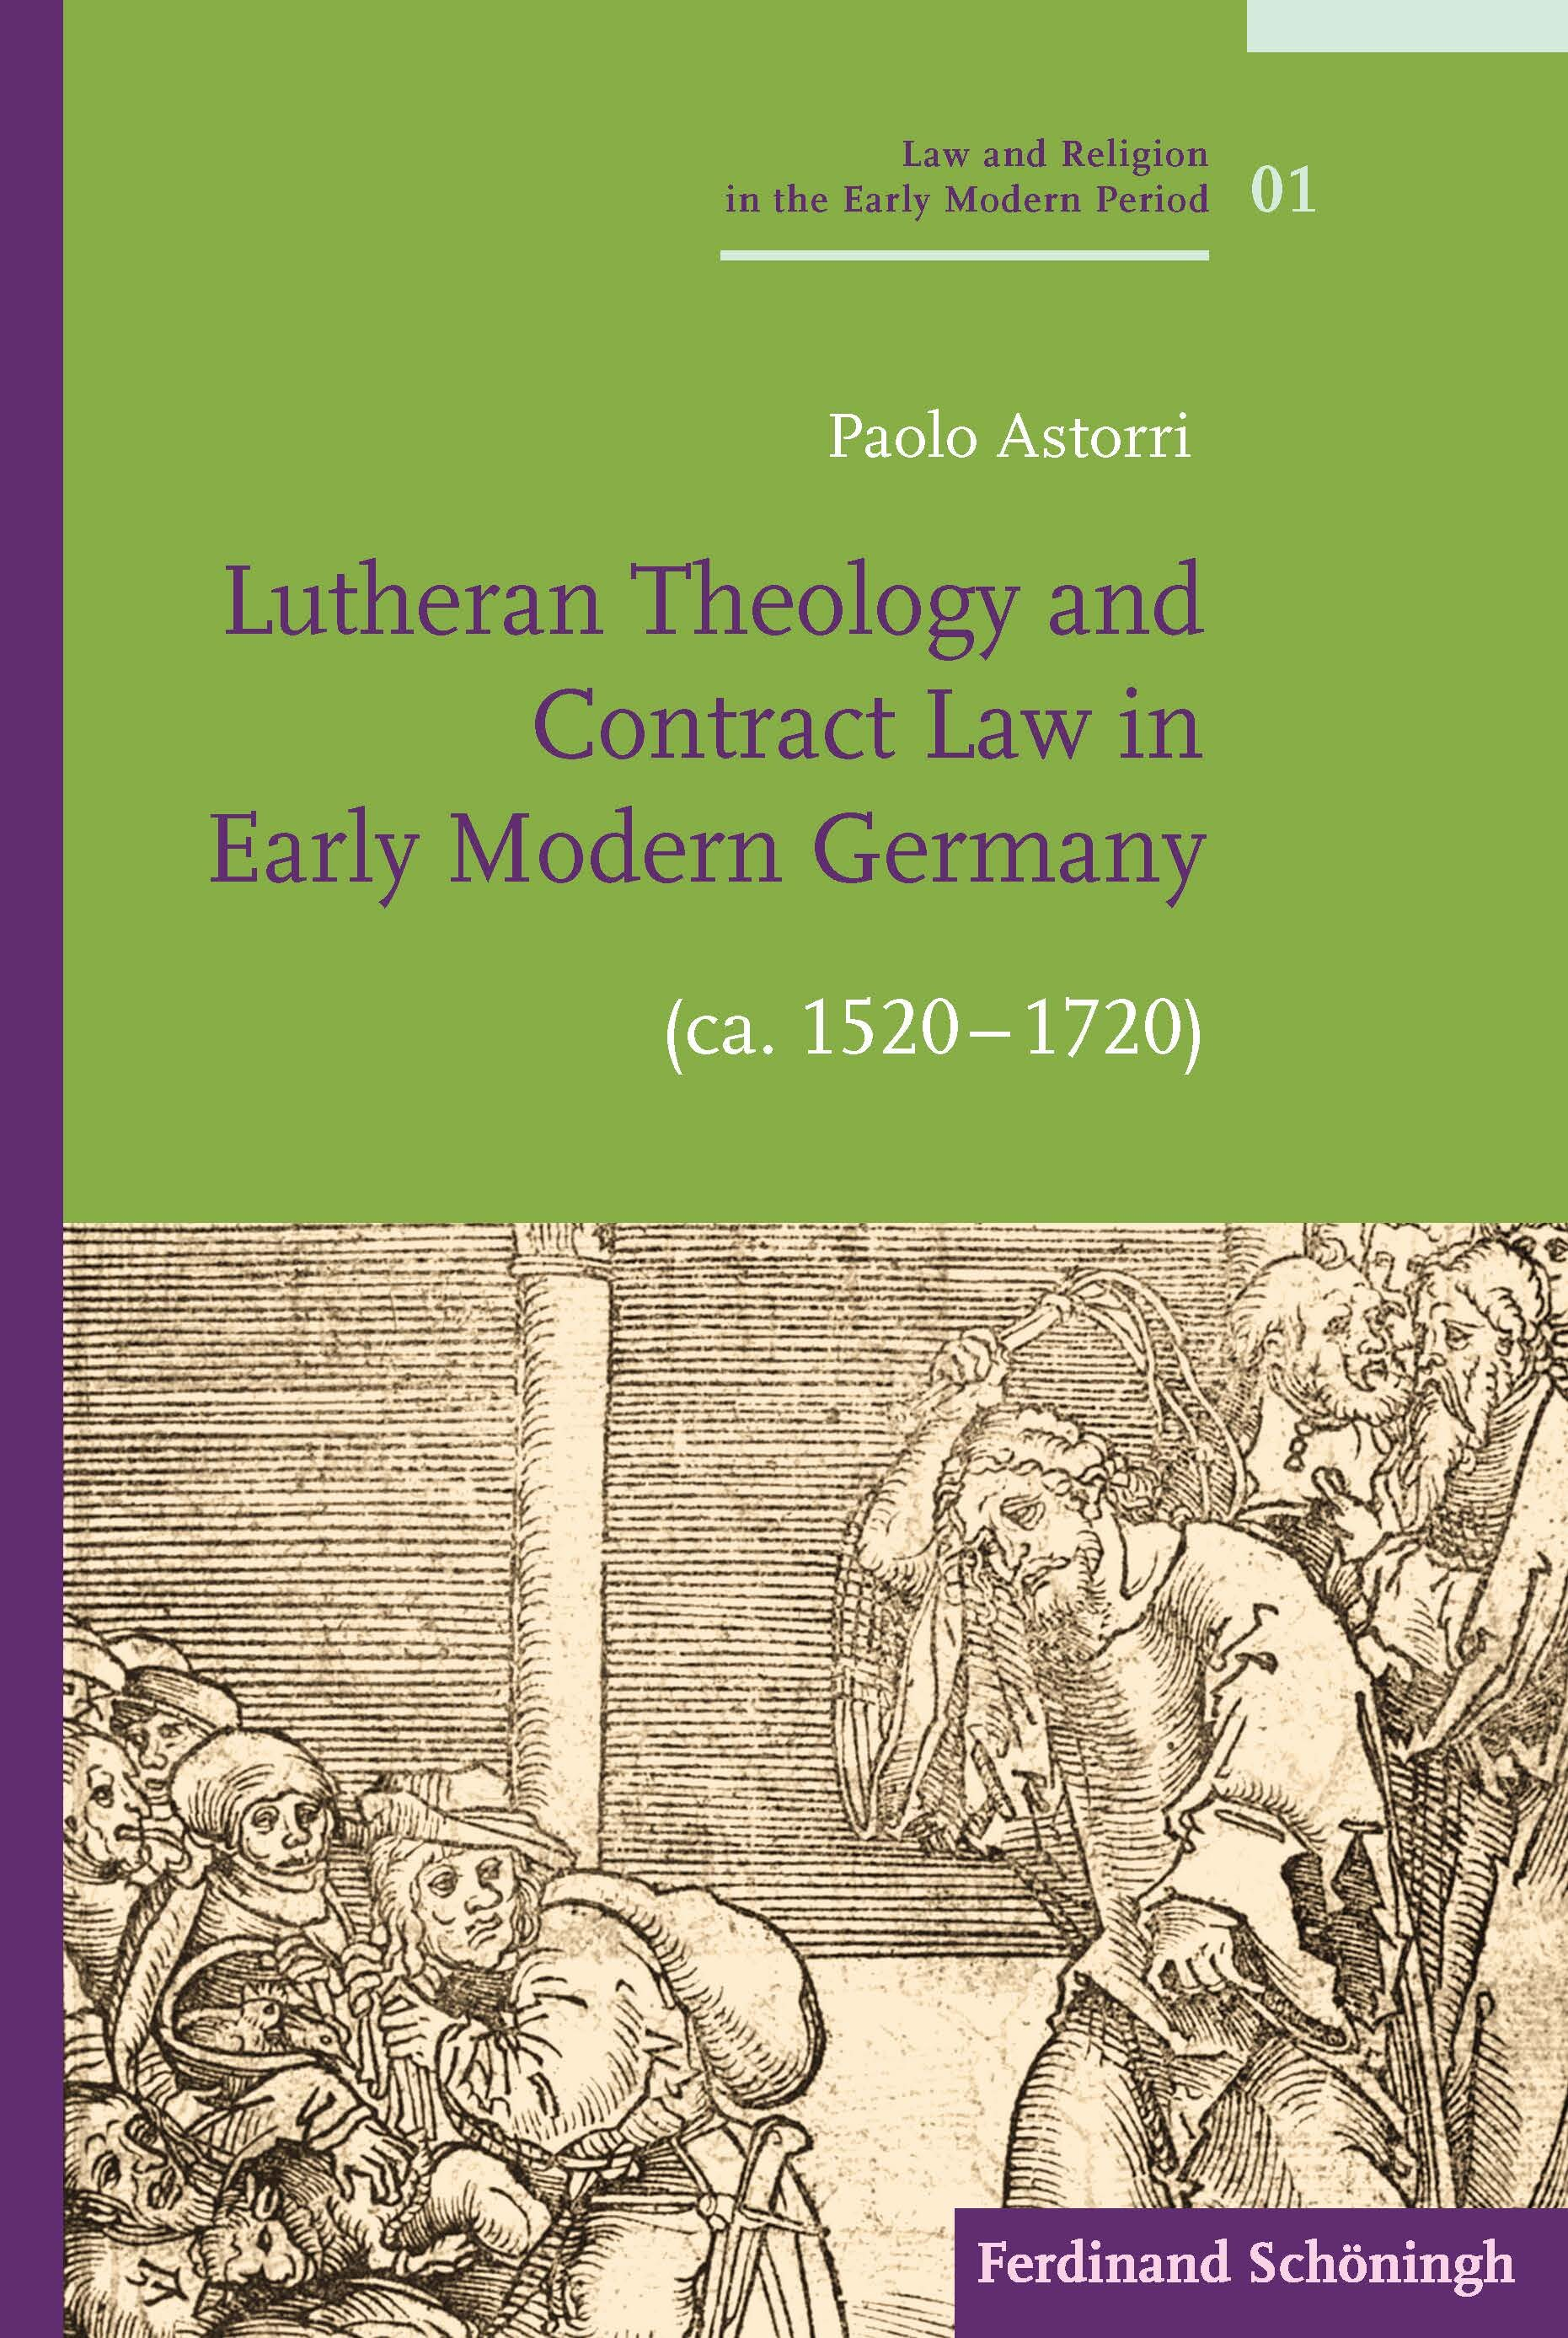 Bibliography in: Lutheran Theology and Contract Law in Early ...